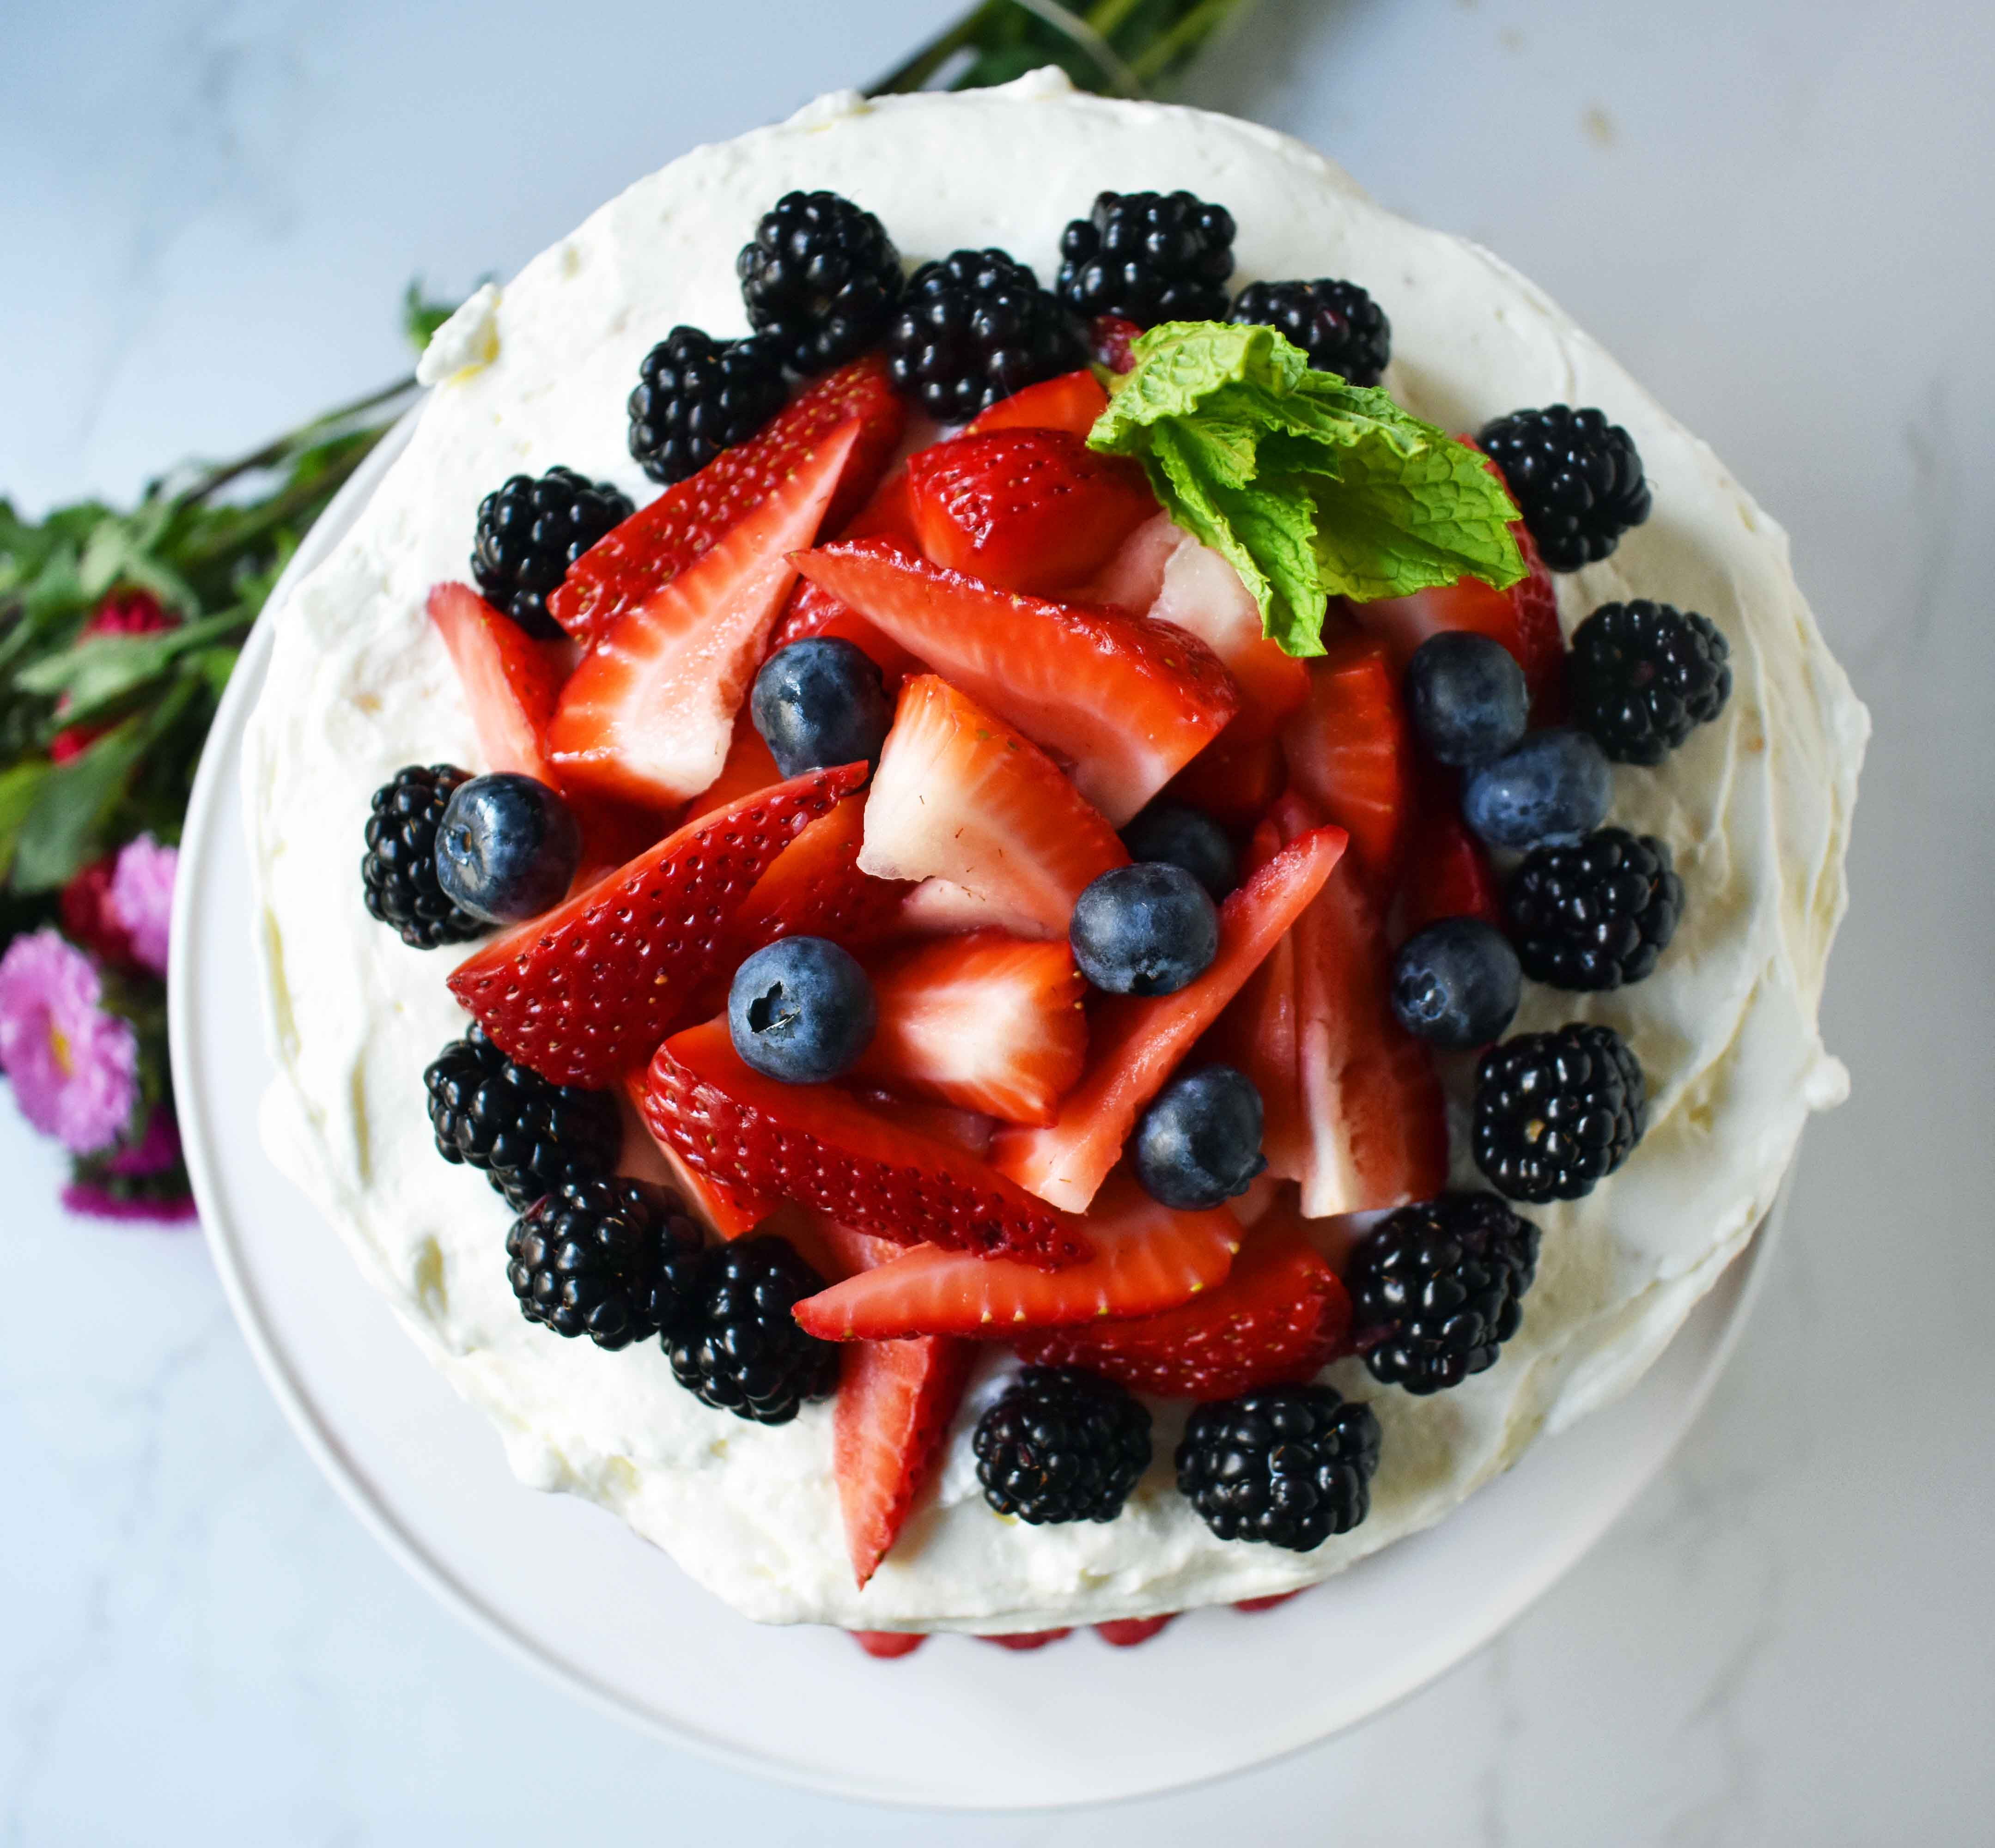 Berry Chantilly Cream Cake. Layers of perfect yellow cake, chantilly cream, jam, and fresh strawberries, raspberries, blackberries, and blueberries. The perfect Spring and Summer dessert that everyone will love. www.modernhoney.com